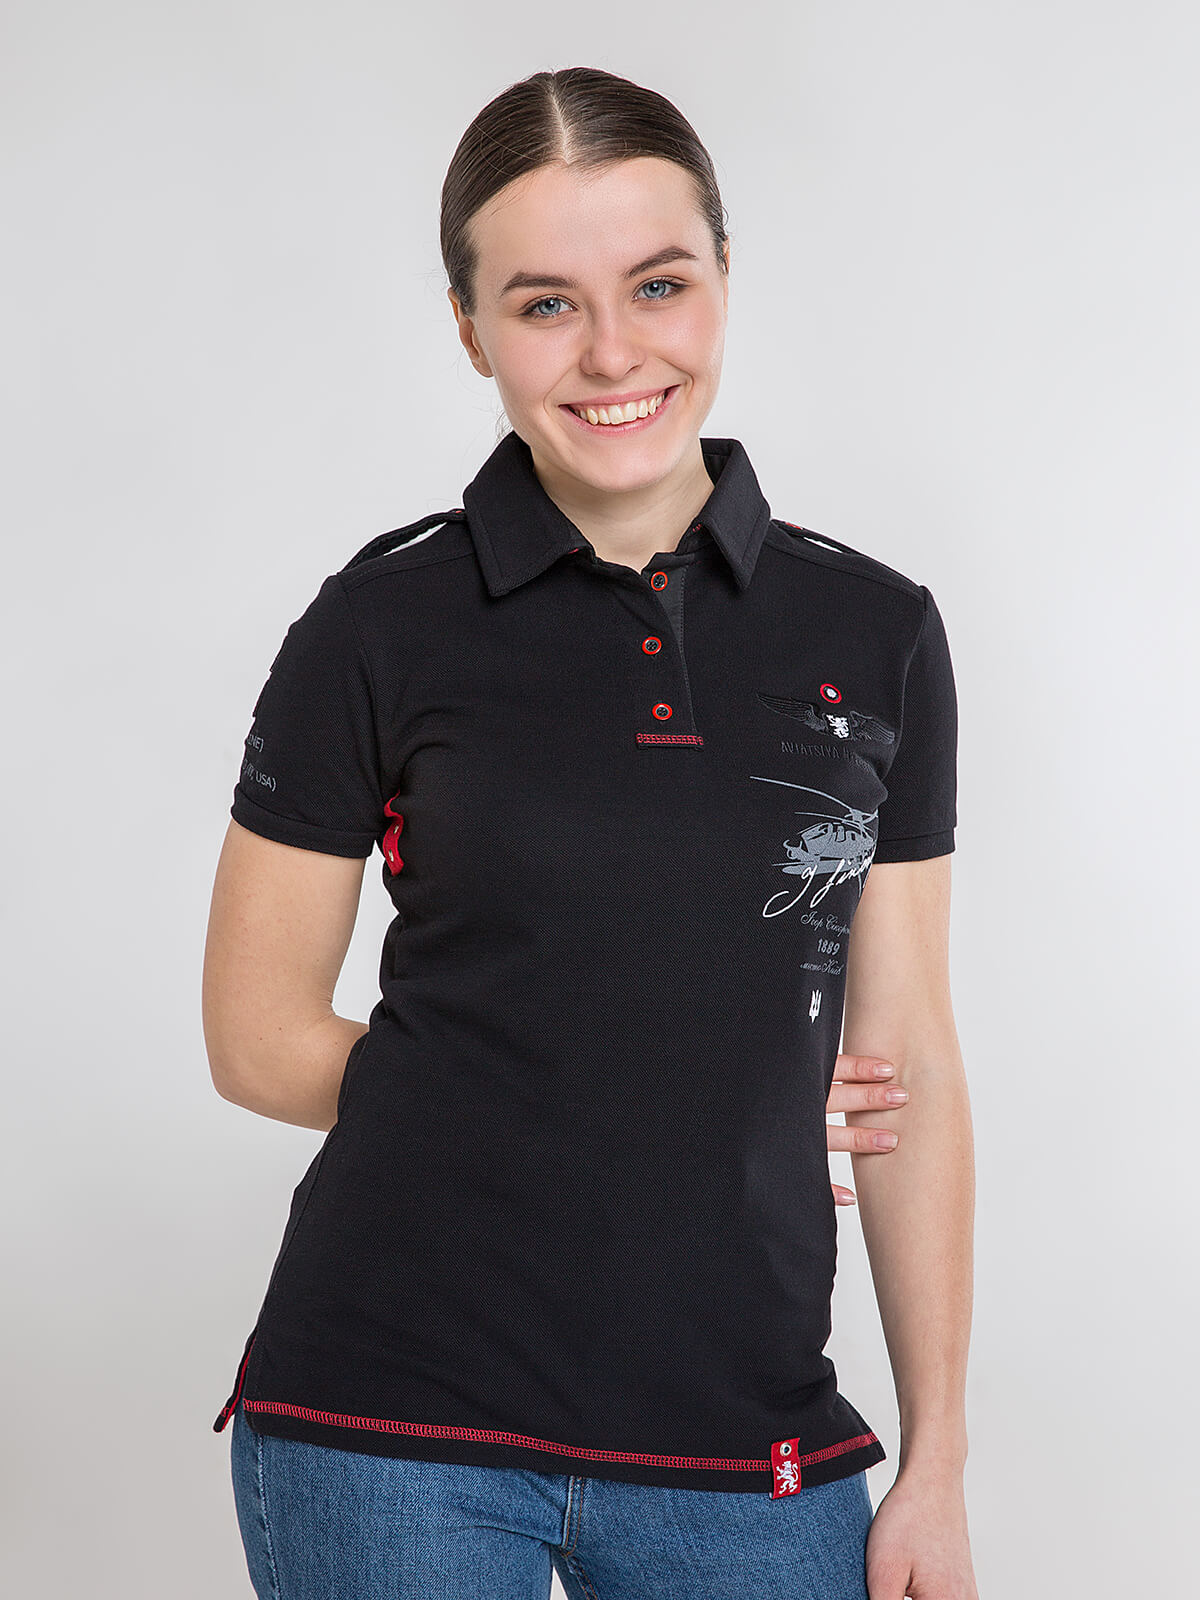 Women's Polo Shirt Sikorsky. Color black. Pique fabric: 100% cotton.